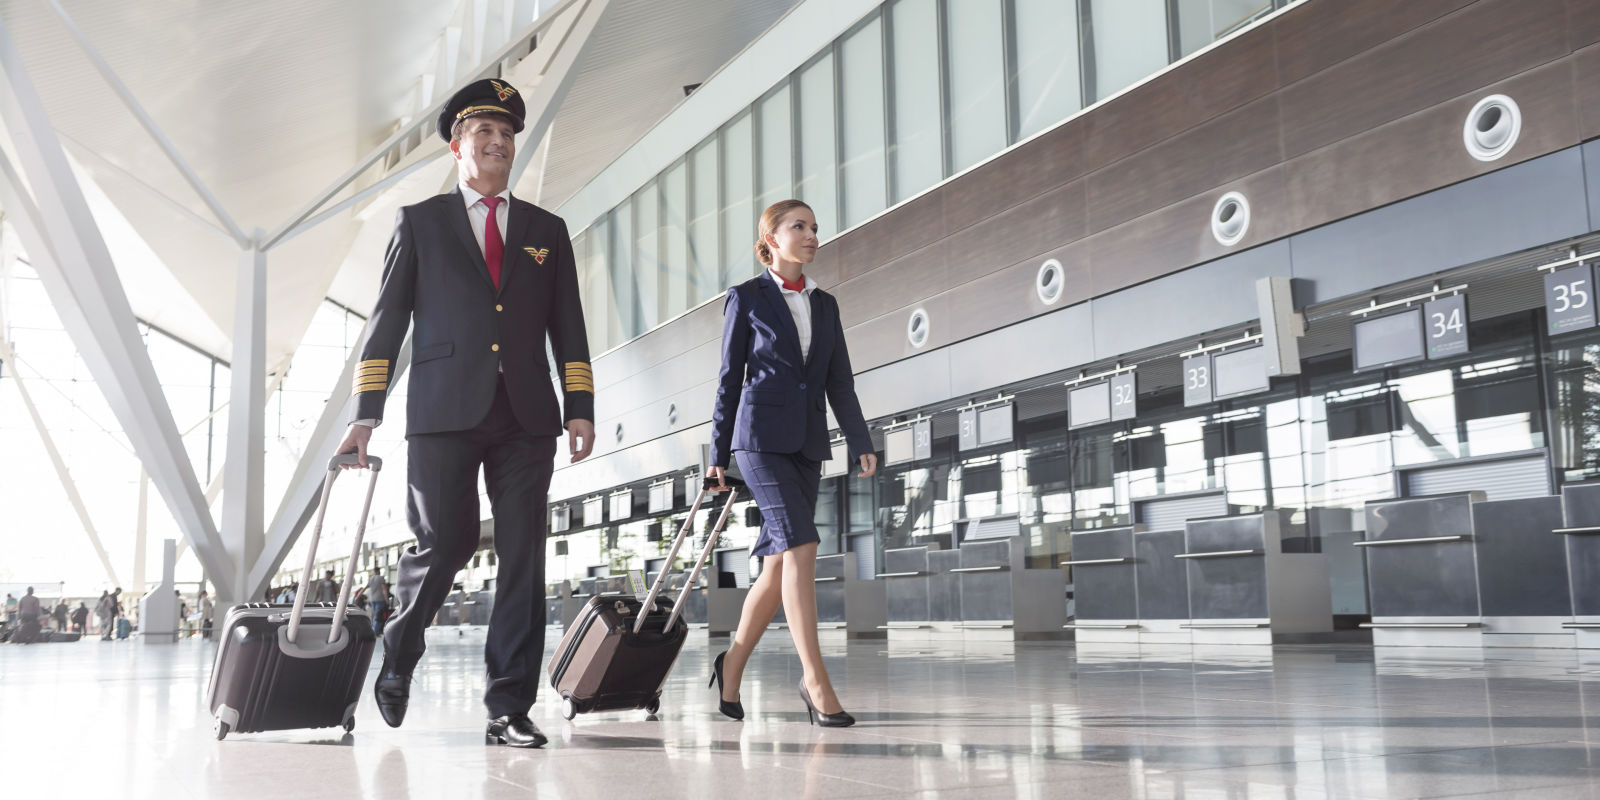 Is it worth dating a flight attendant